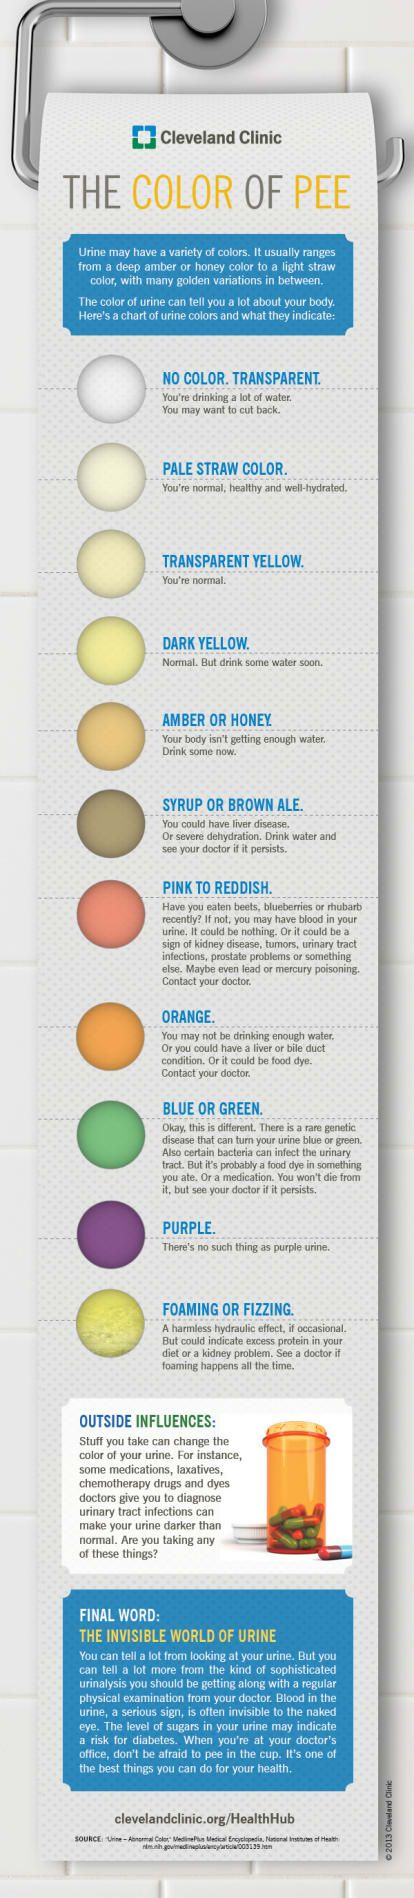 Best 25+ Pee color ideas on Pinterest Pee chart, Color of pee - stool color chart